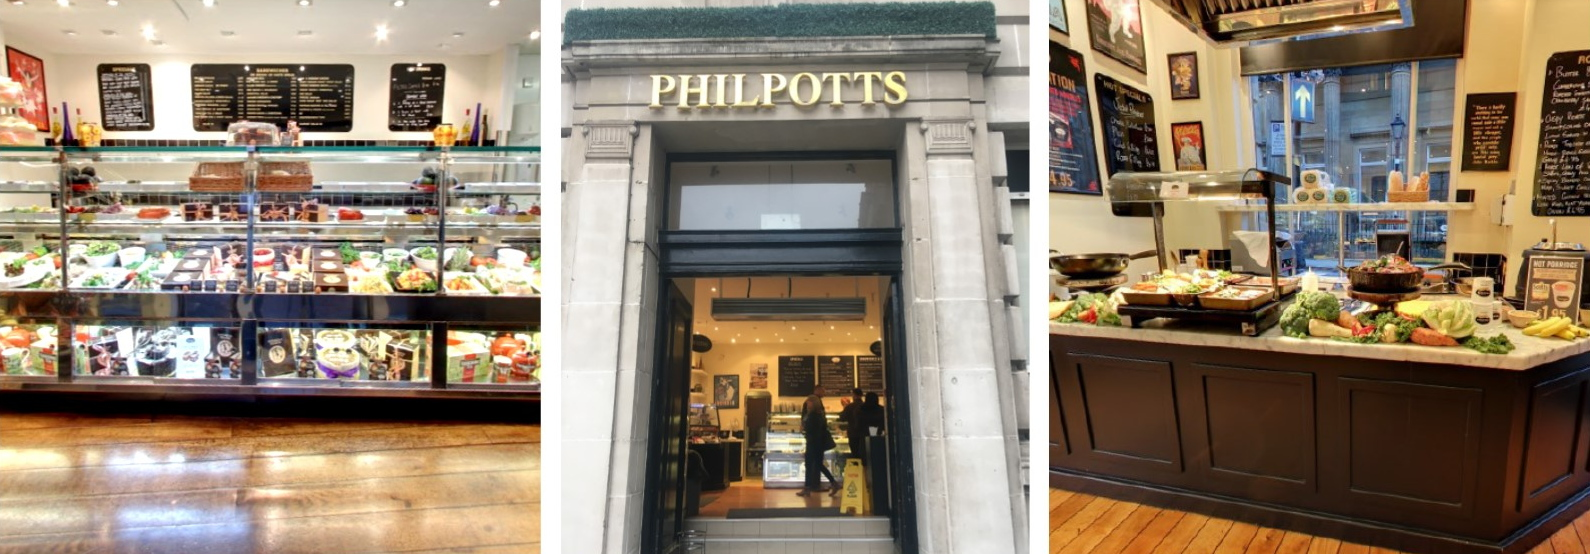 Philpotts stores